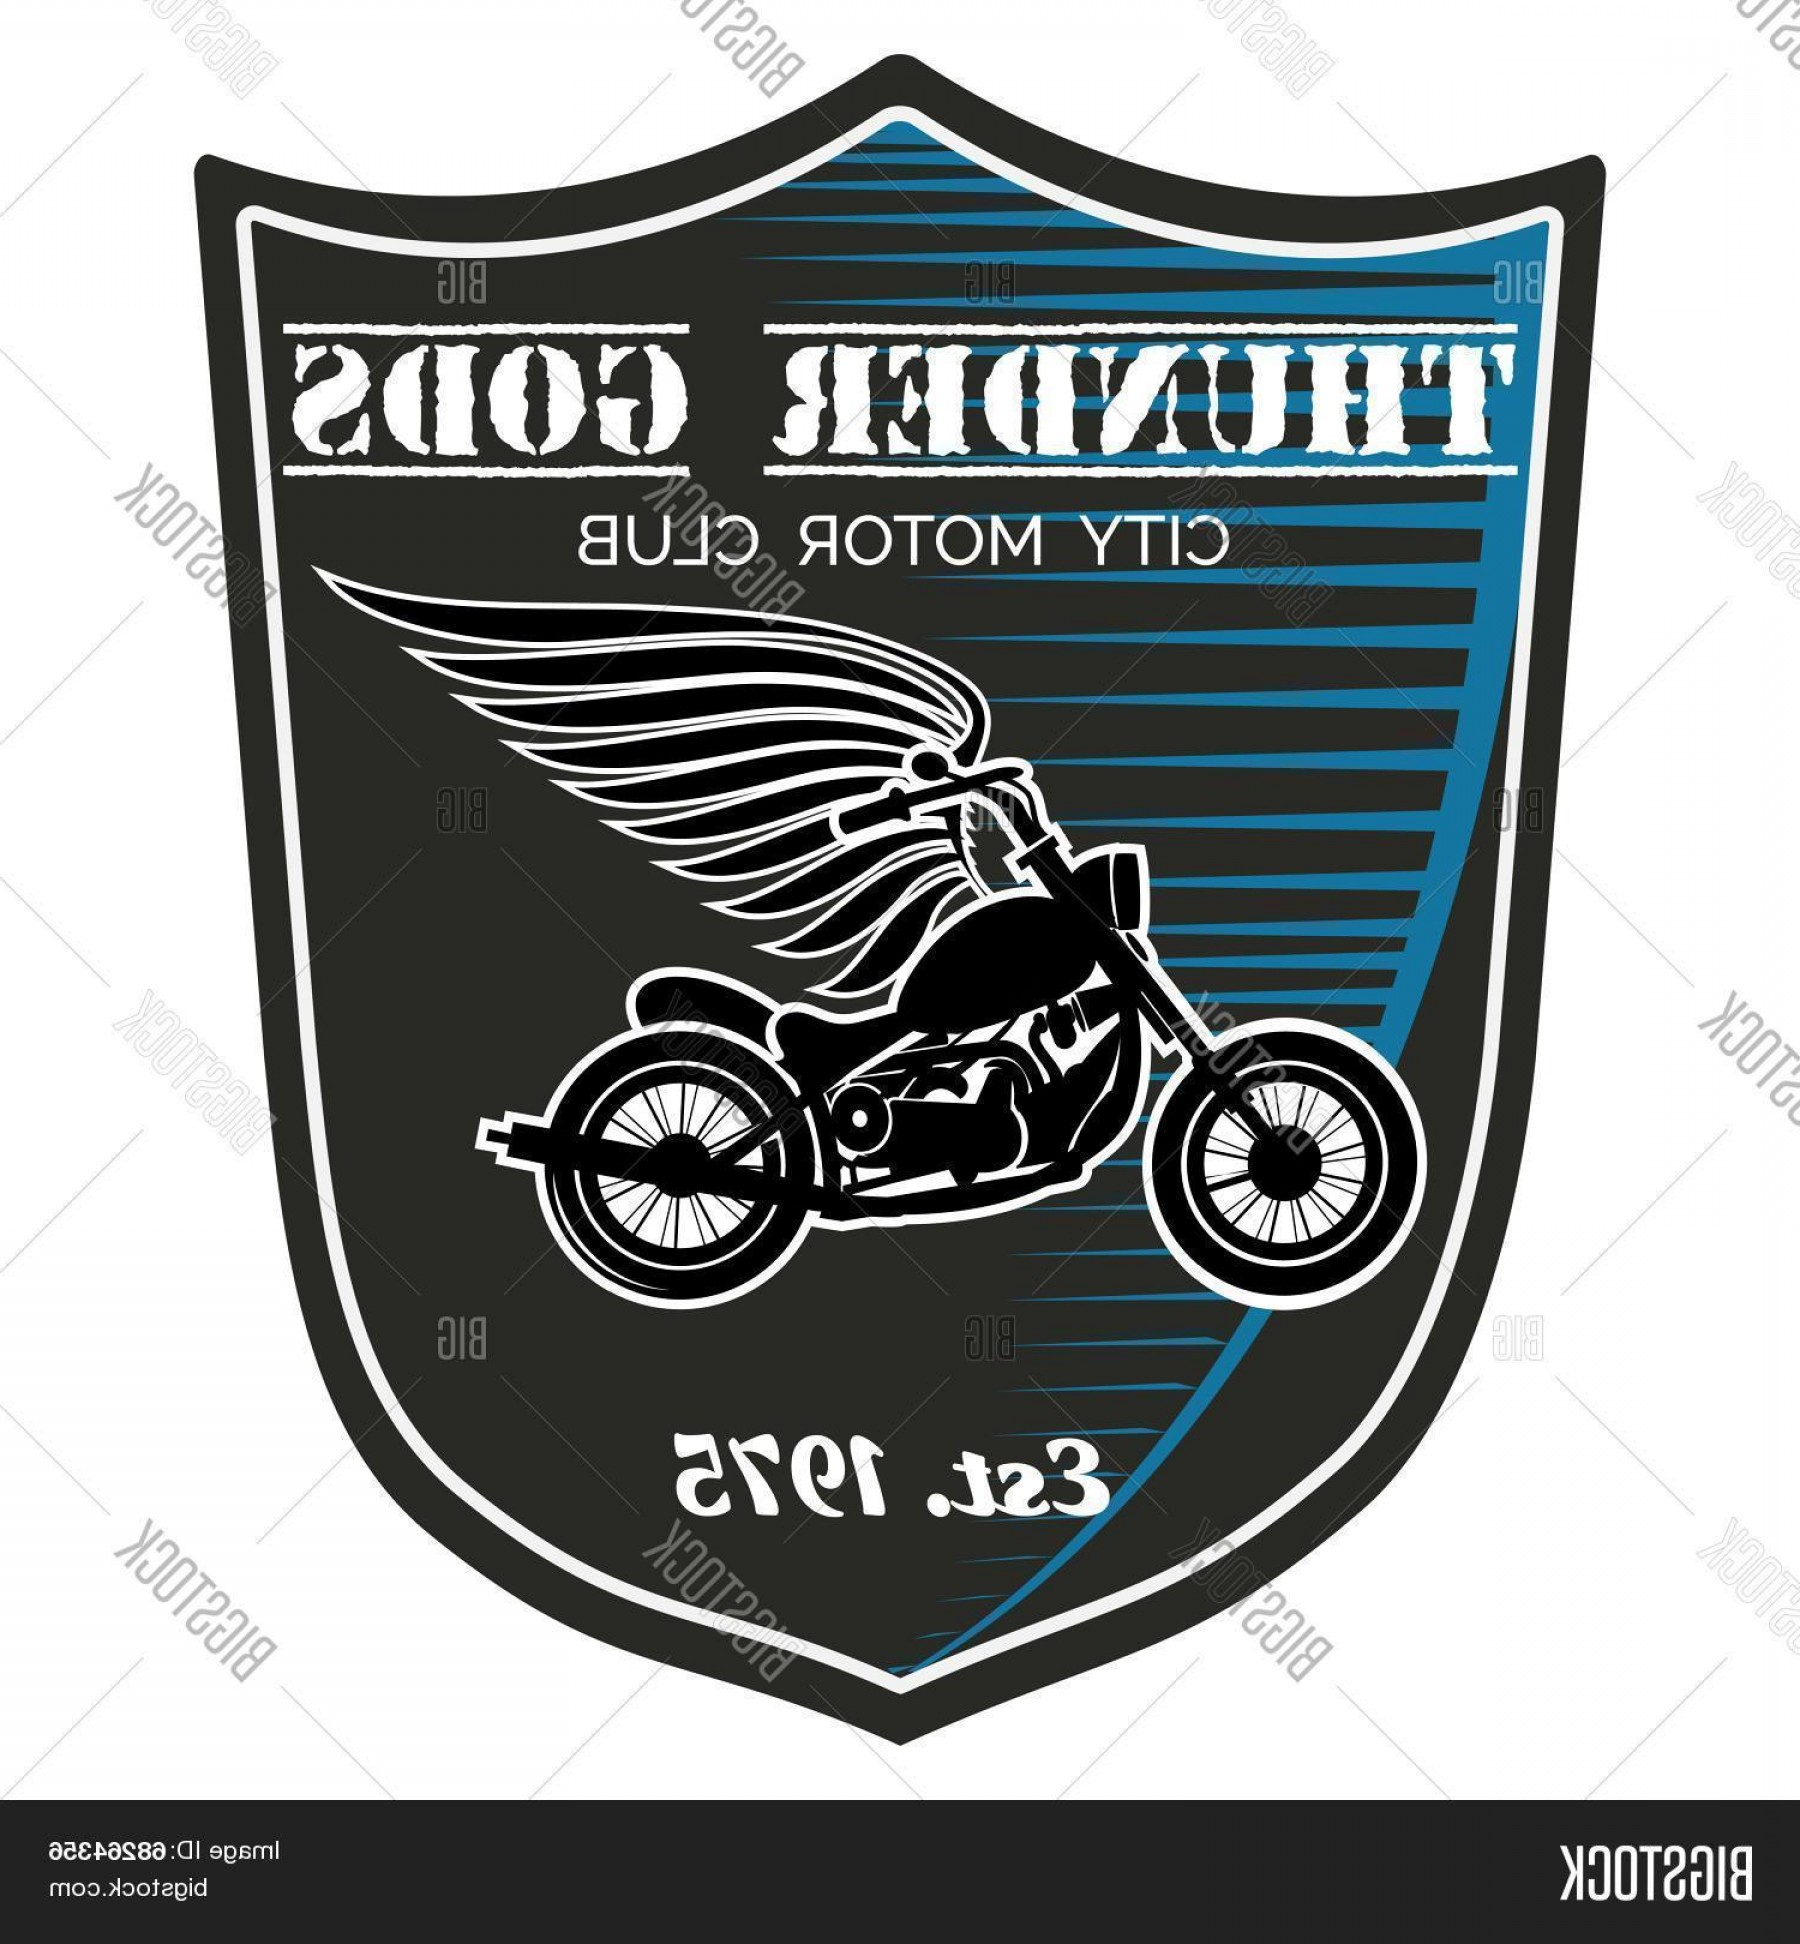 Motorcycle Club Vector: Stock Vector Vector Motorcycle Club Label Thunder Gods